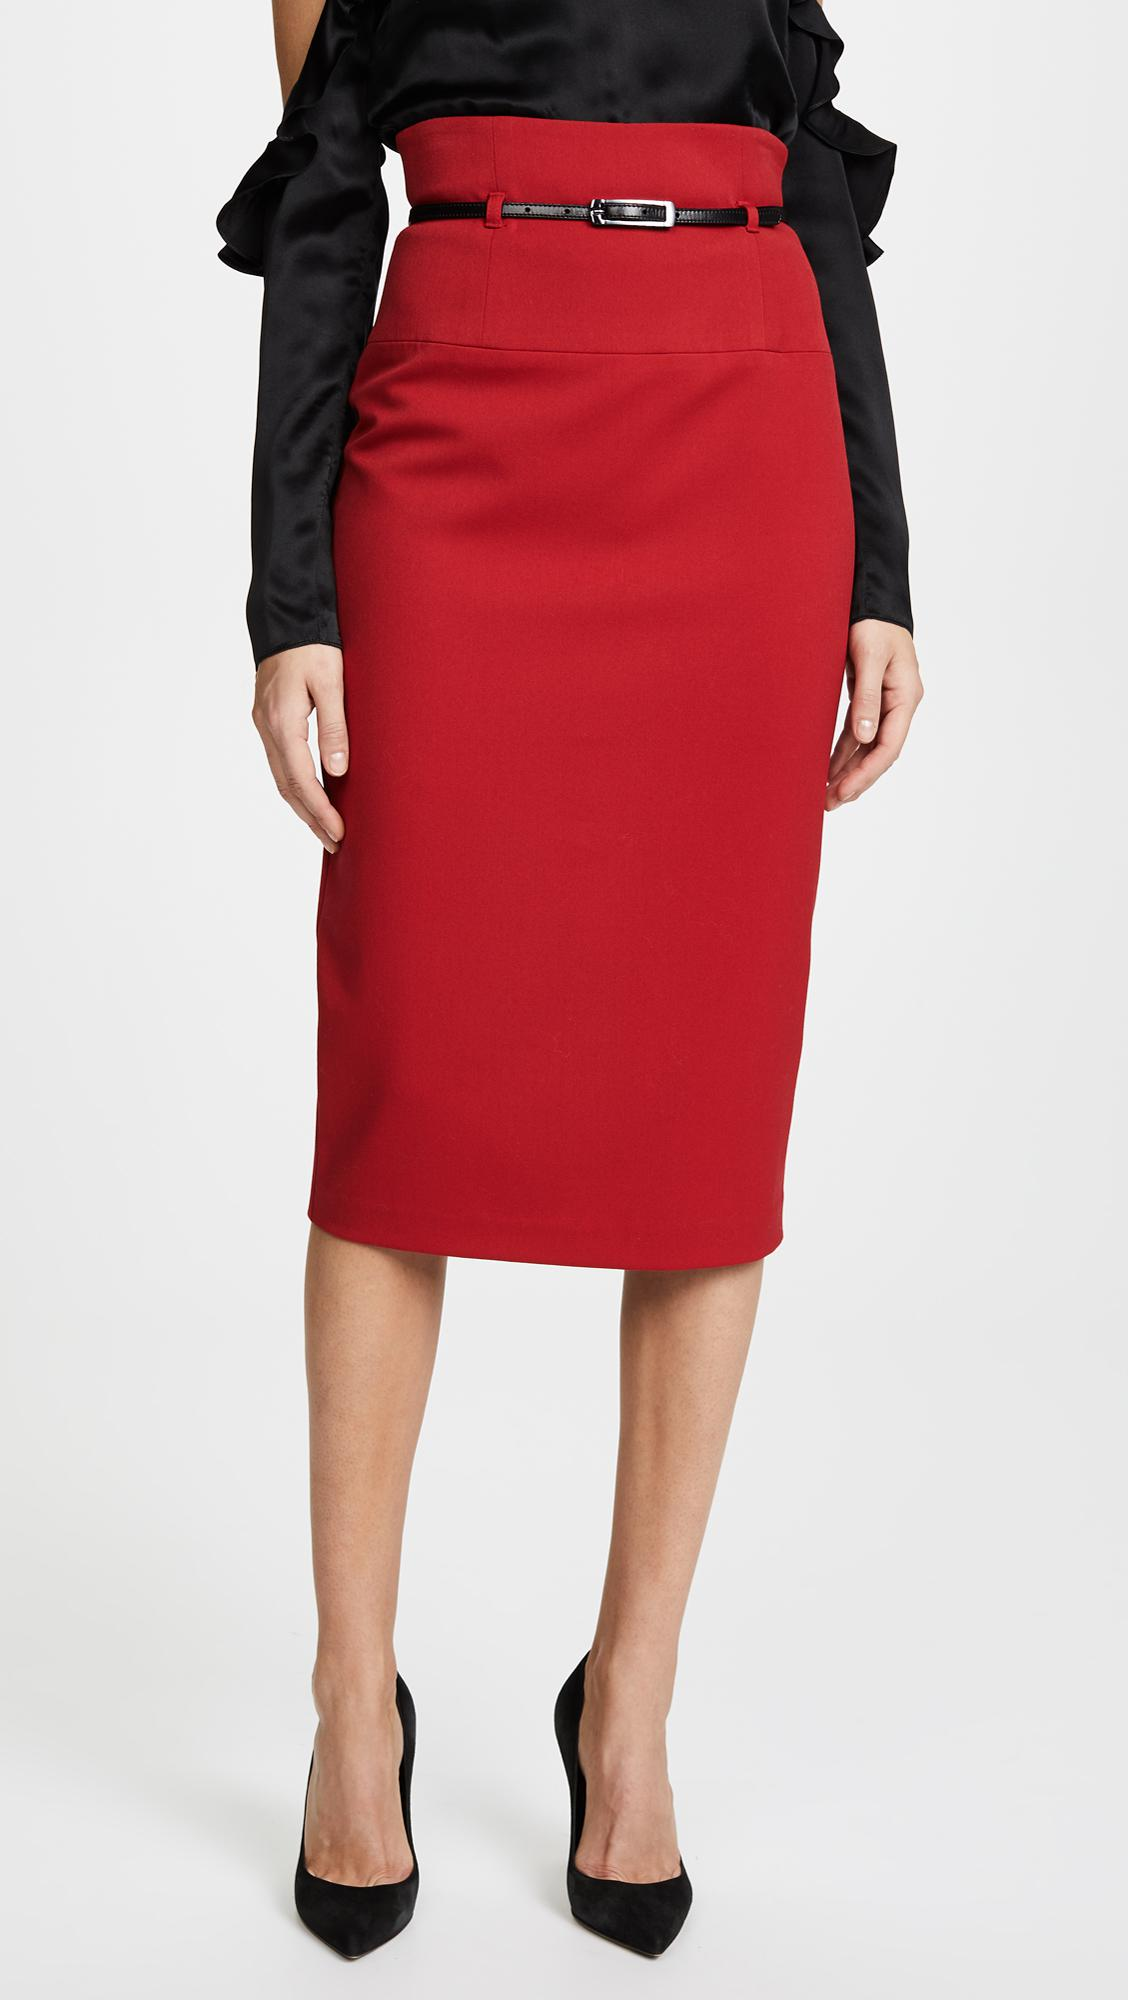 49706d6624 Lyst black halo high waisted pencil skirt in red jpg 1128x2000 Halo skirt